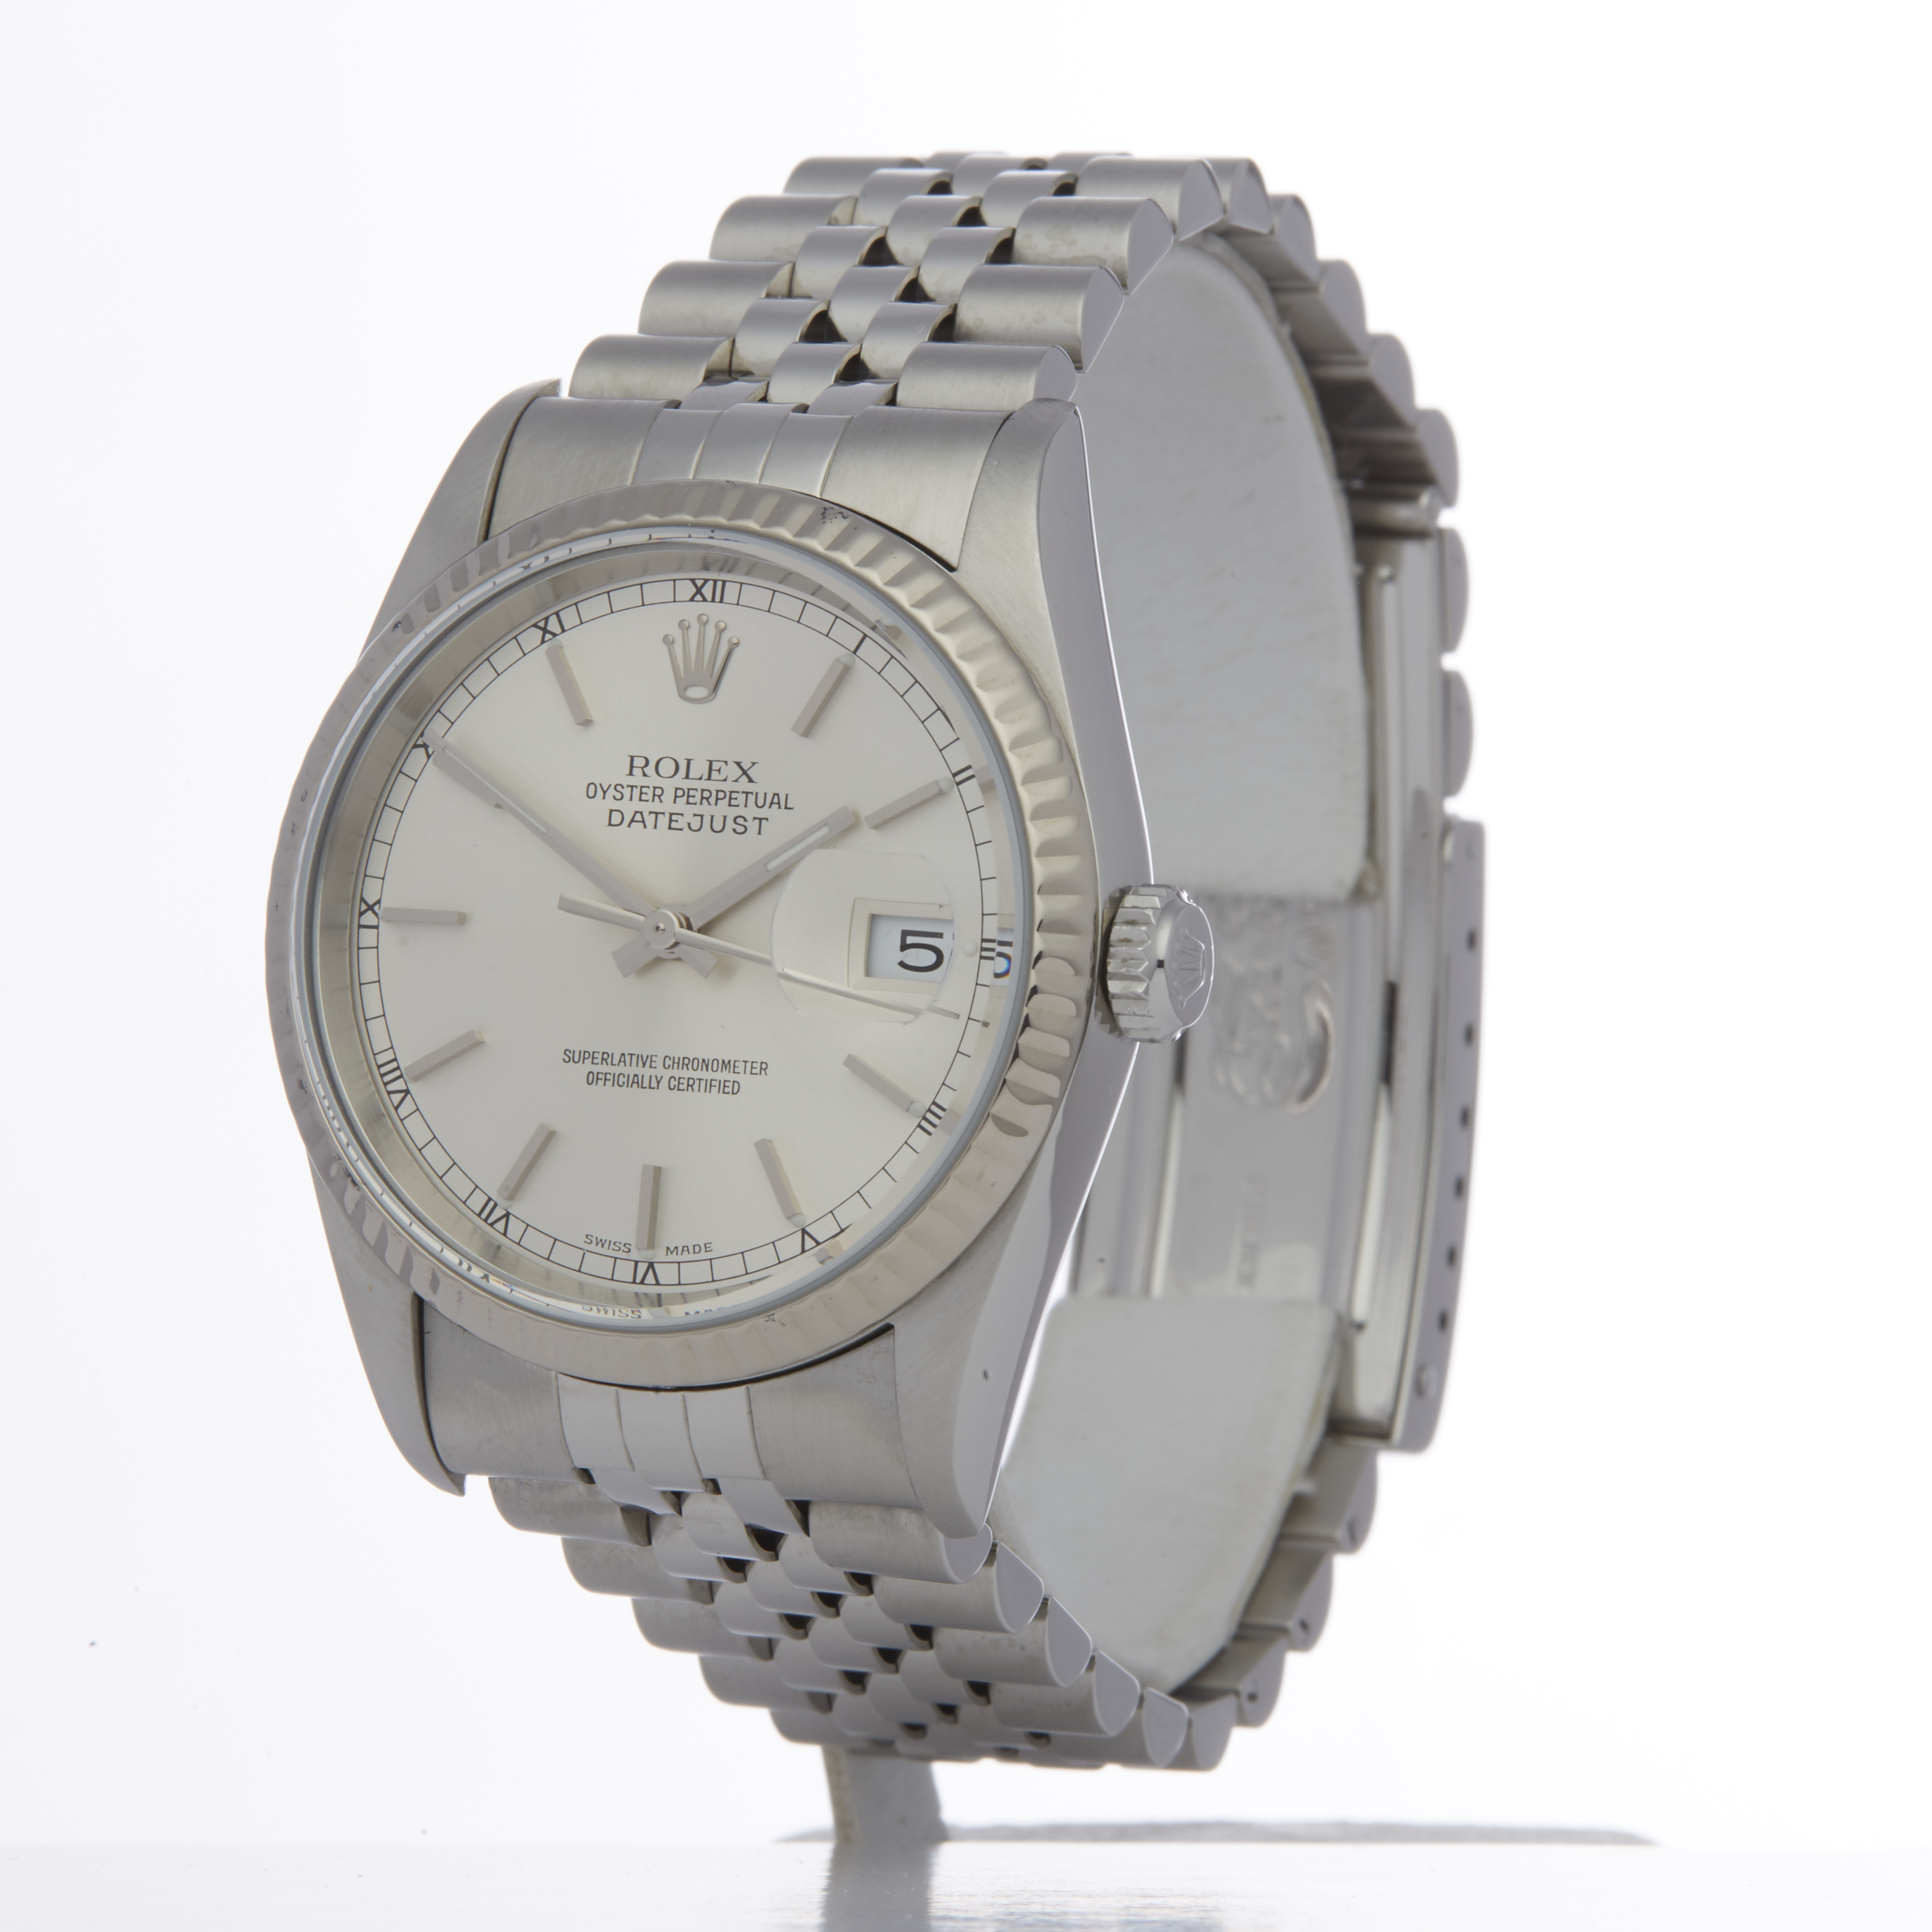 Rolex Datejust 36 16234 Unisex Stainless Steel Watch - Image 6 of 6